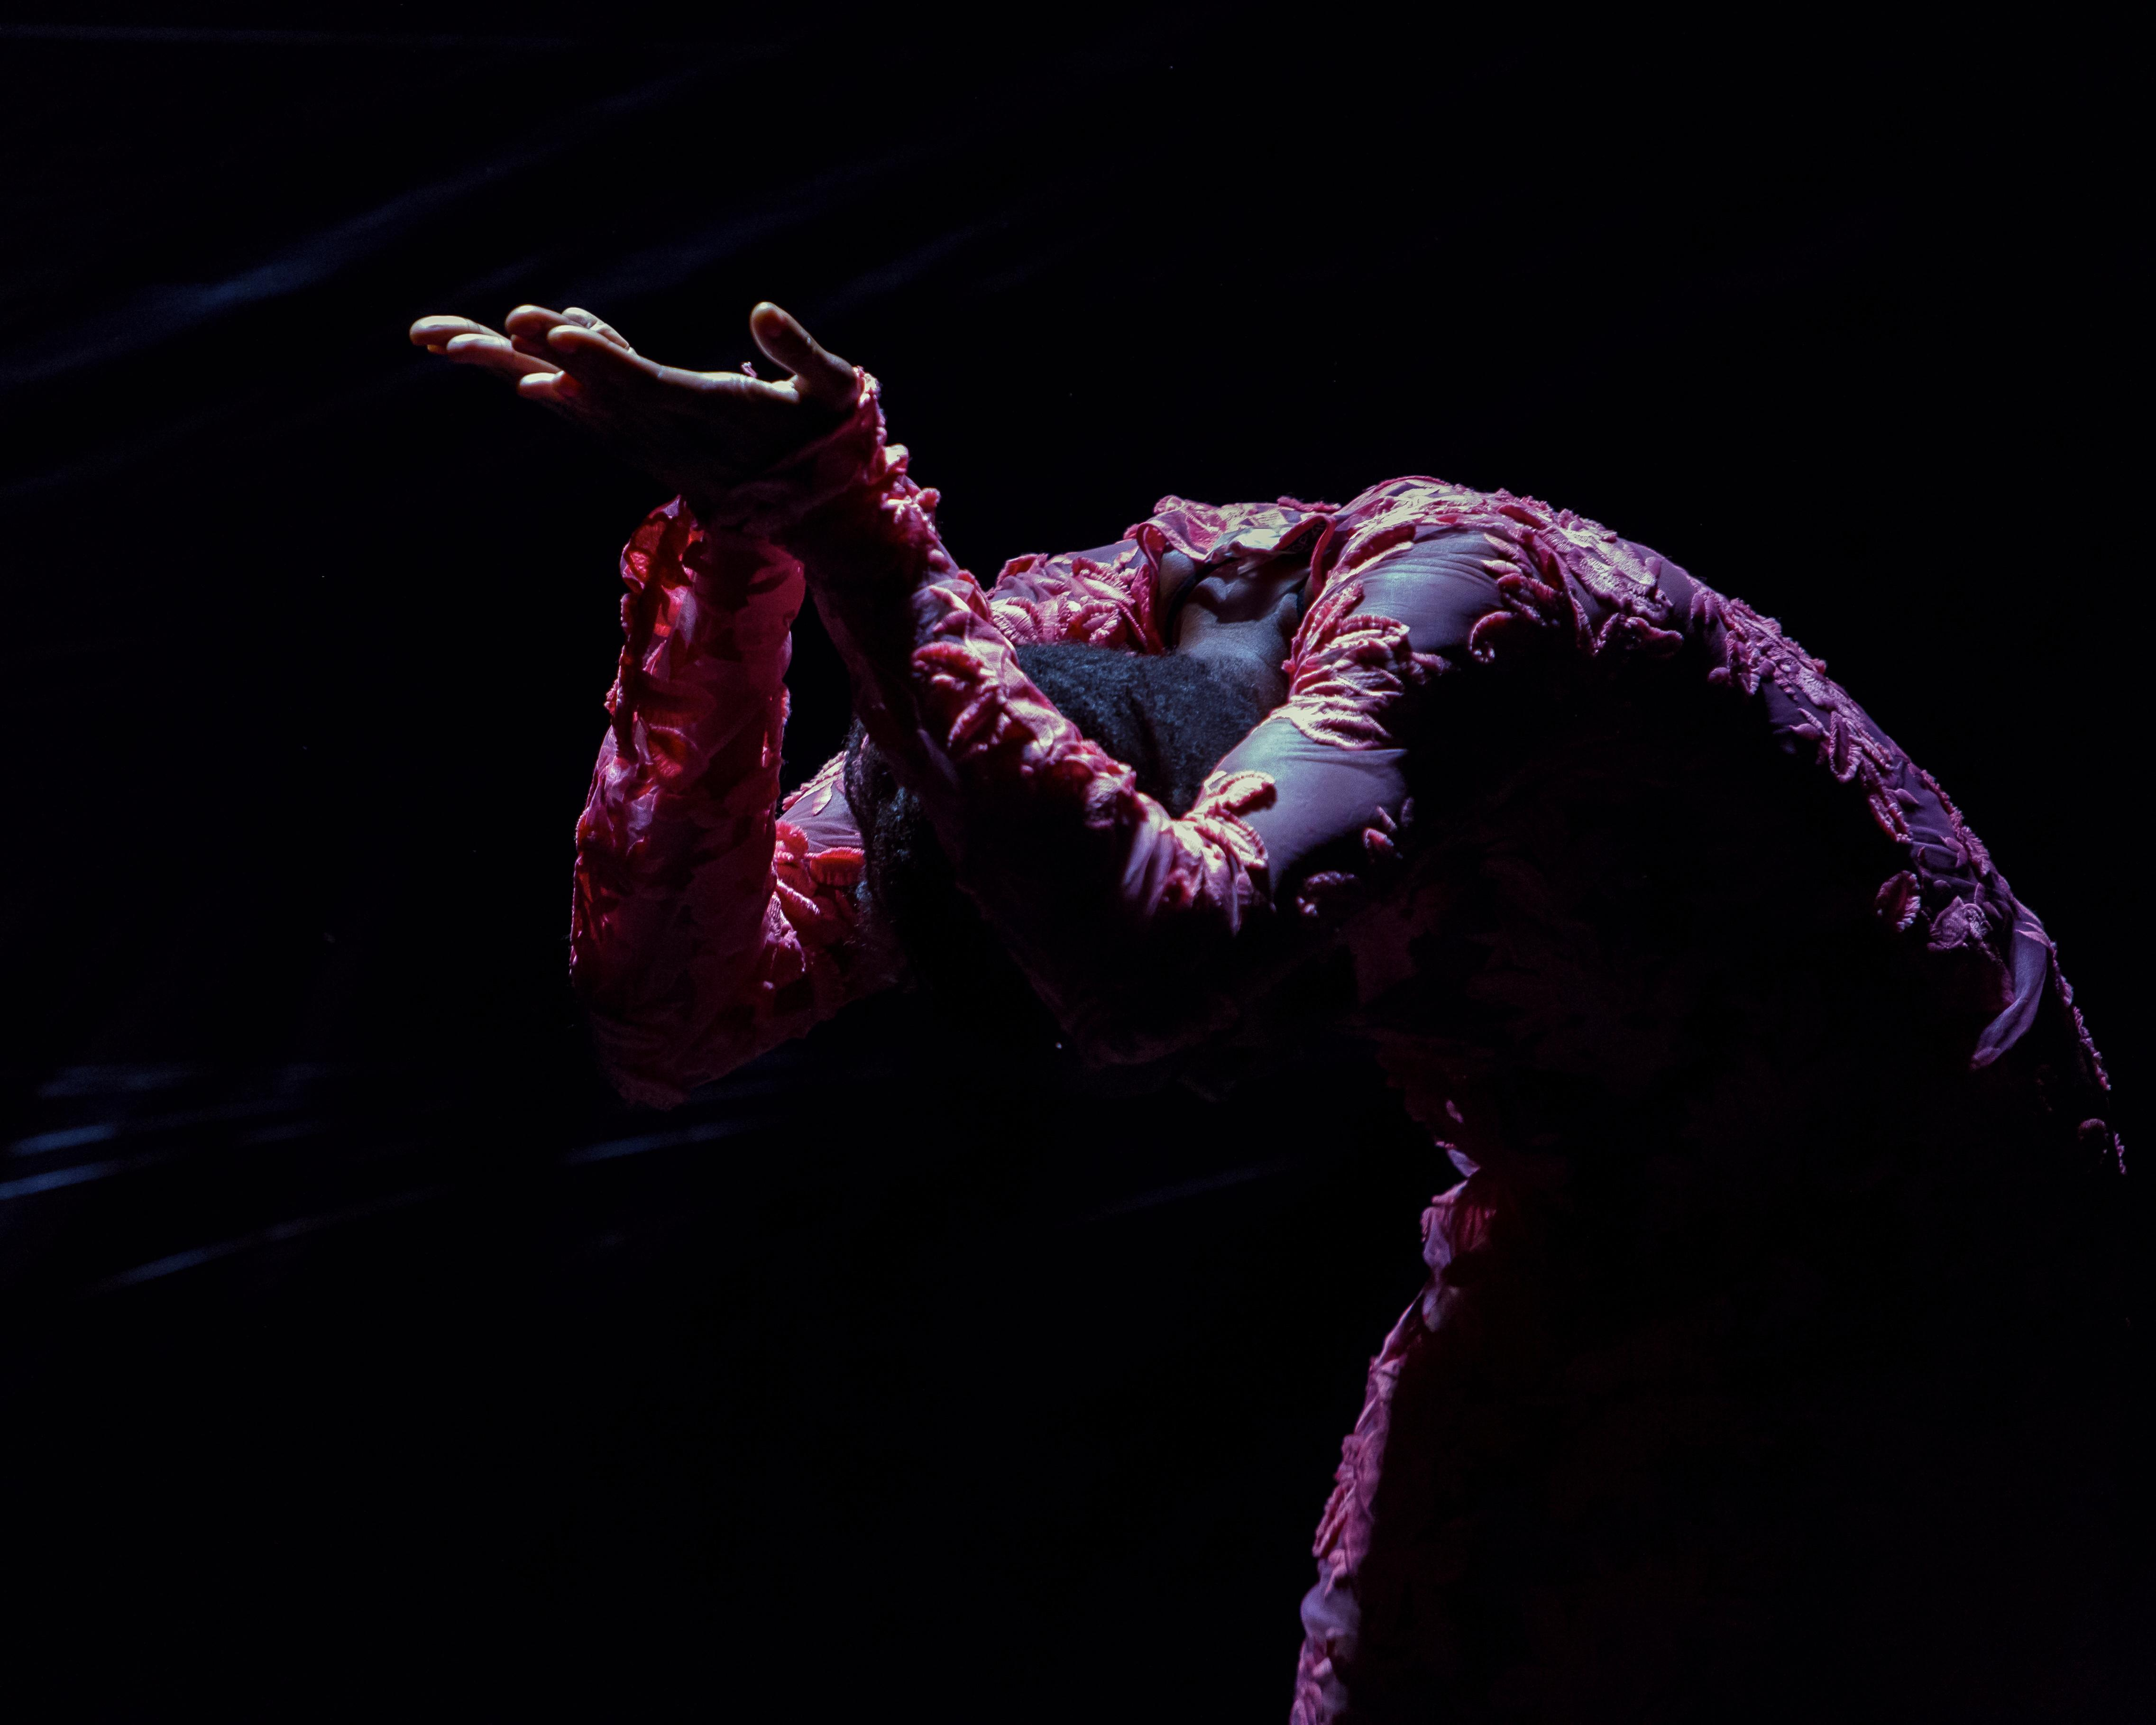 A lit figure against a dark background wears an embroidered costume and bends forward from the waist, arms raised and palms turned upward, and head faced downward, hidden from view.